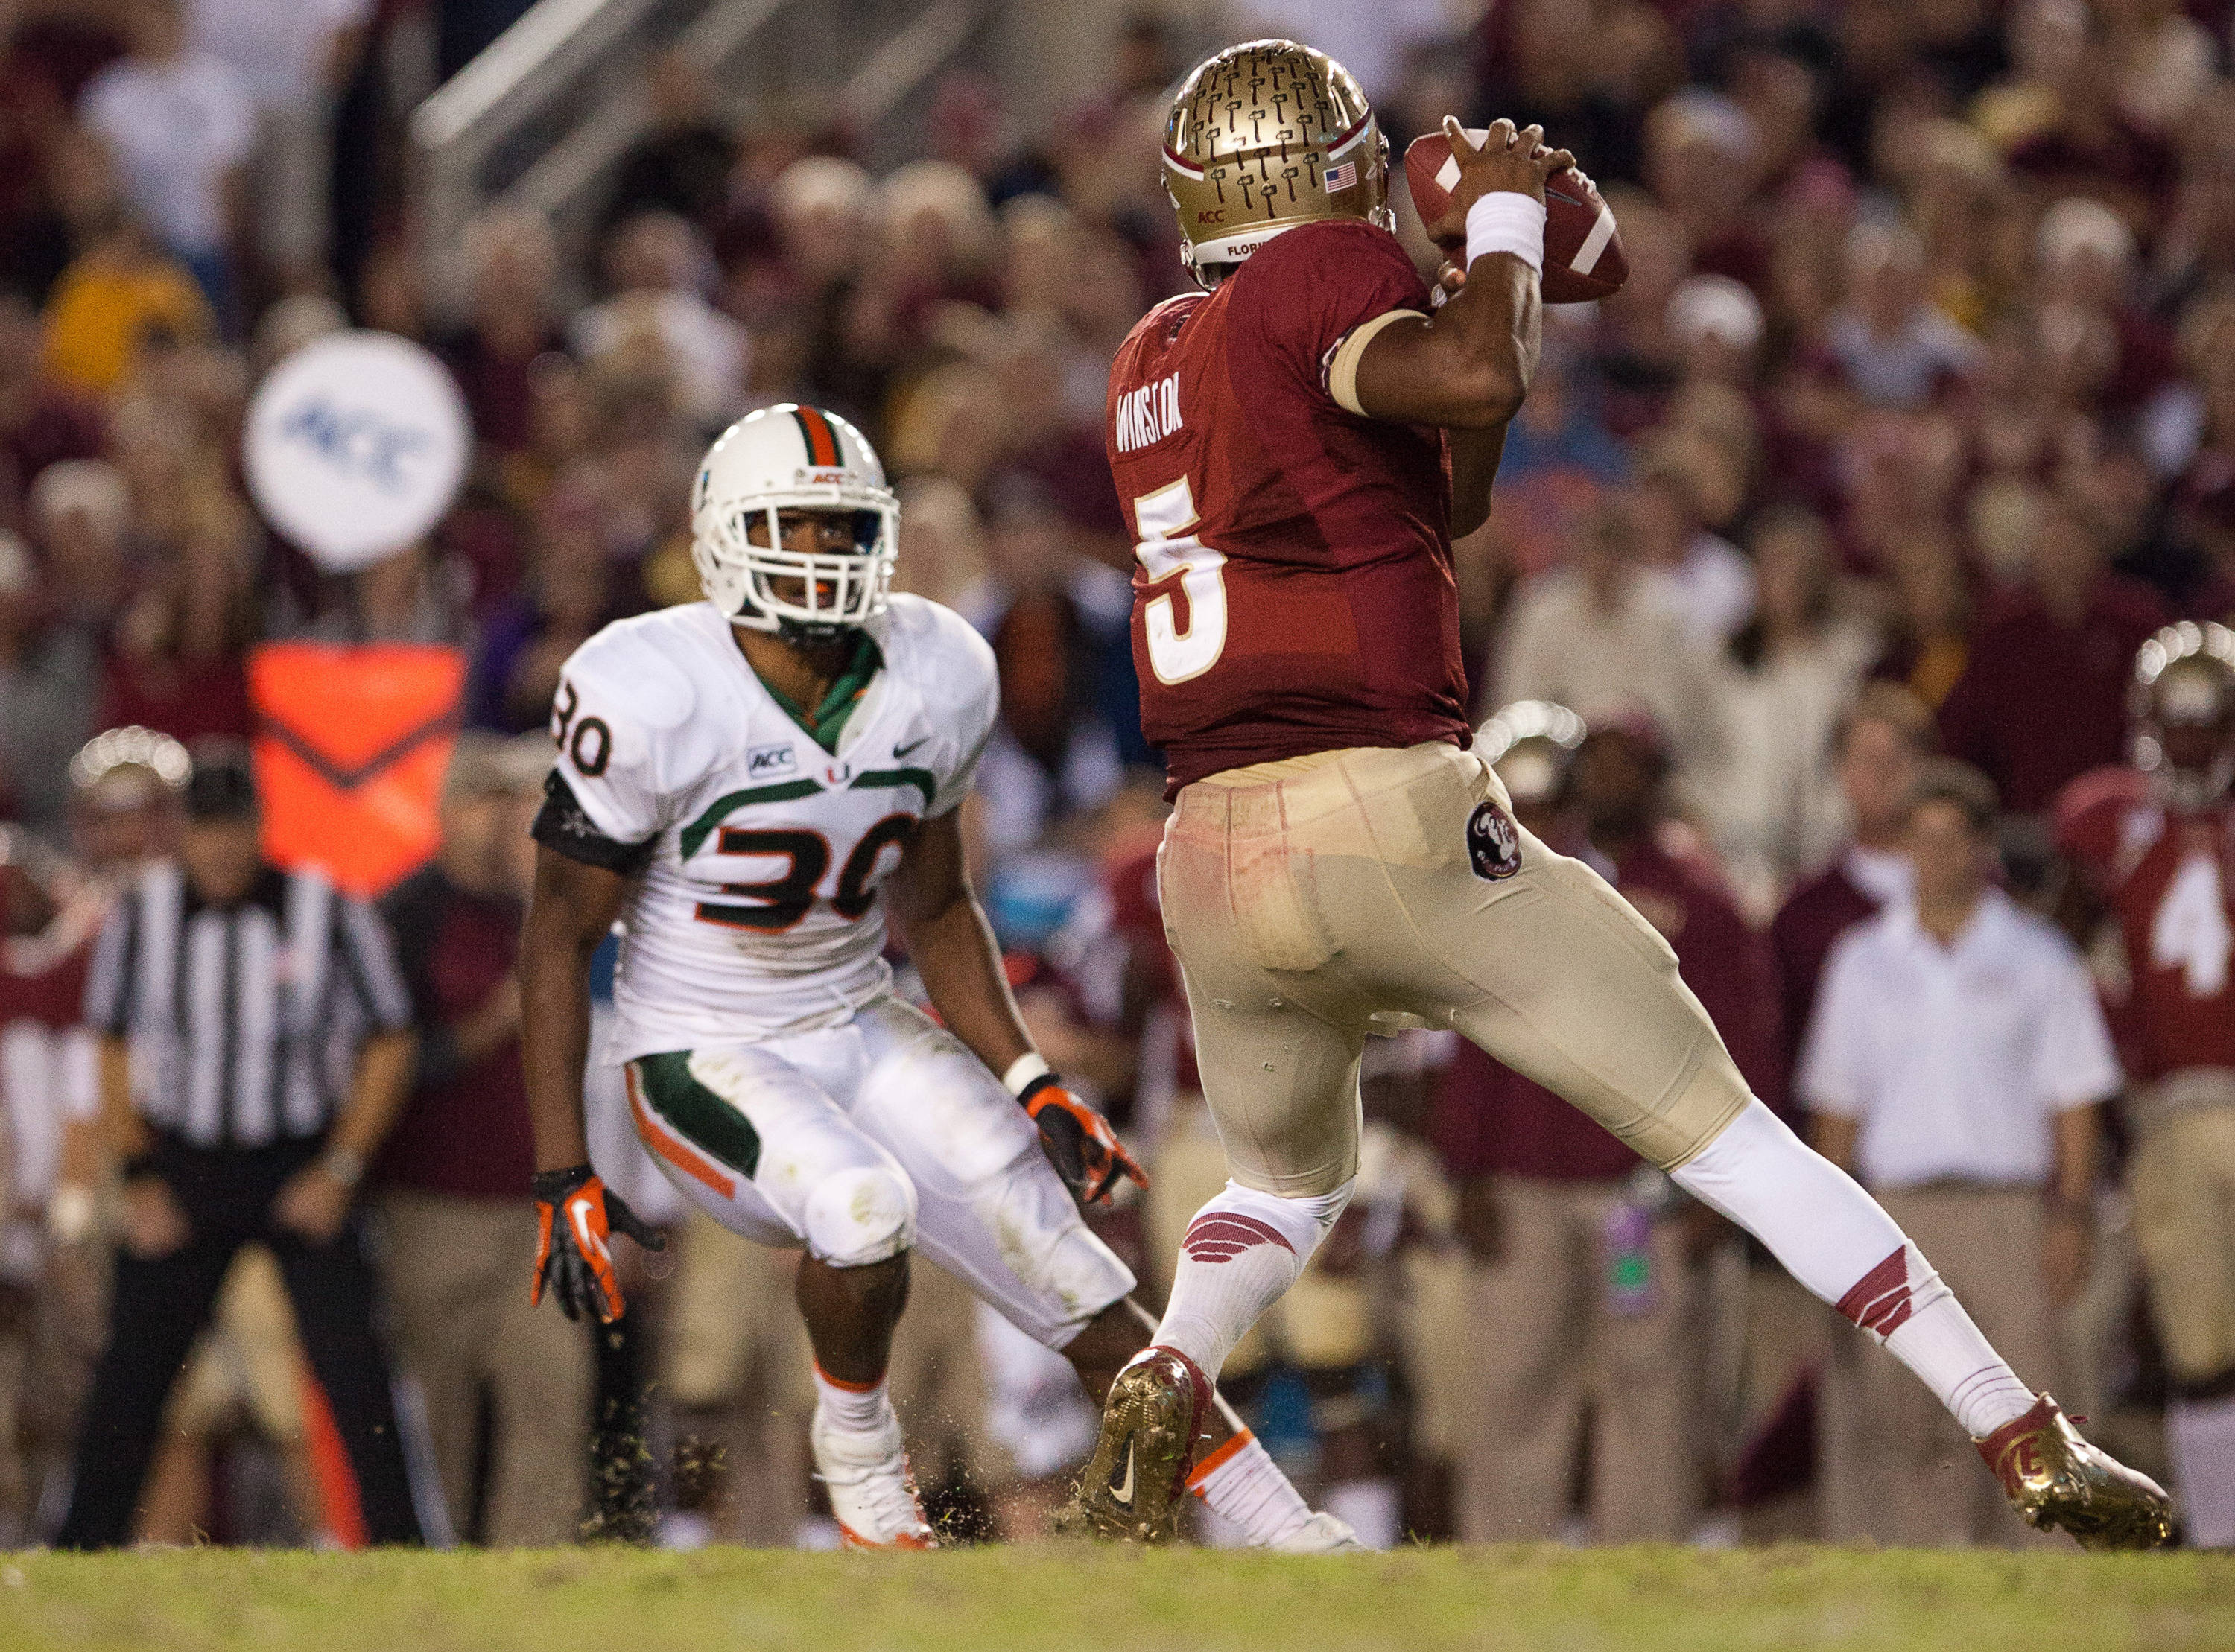 Jameis Winston (5) makes a pass during FSU football's 41-14 win over Miami on Saturday, November 2, 2013 in Tallahassee, Fla. Photo by Michael Schwarz.